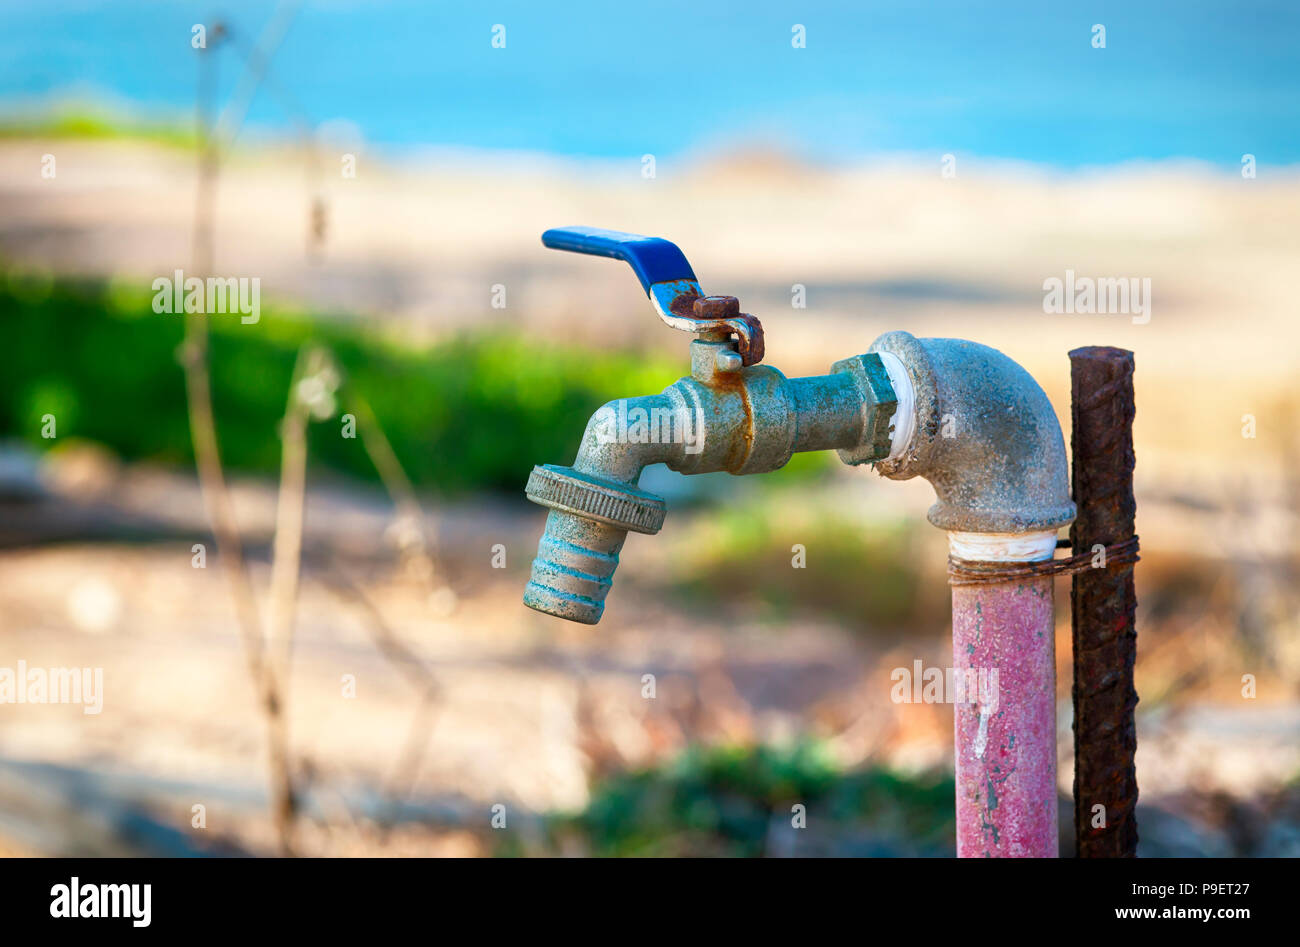 Garden water tap outside. Close-up. - Stock Image